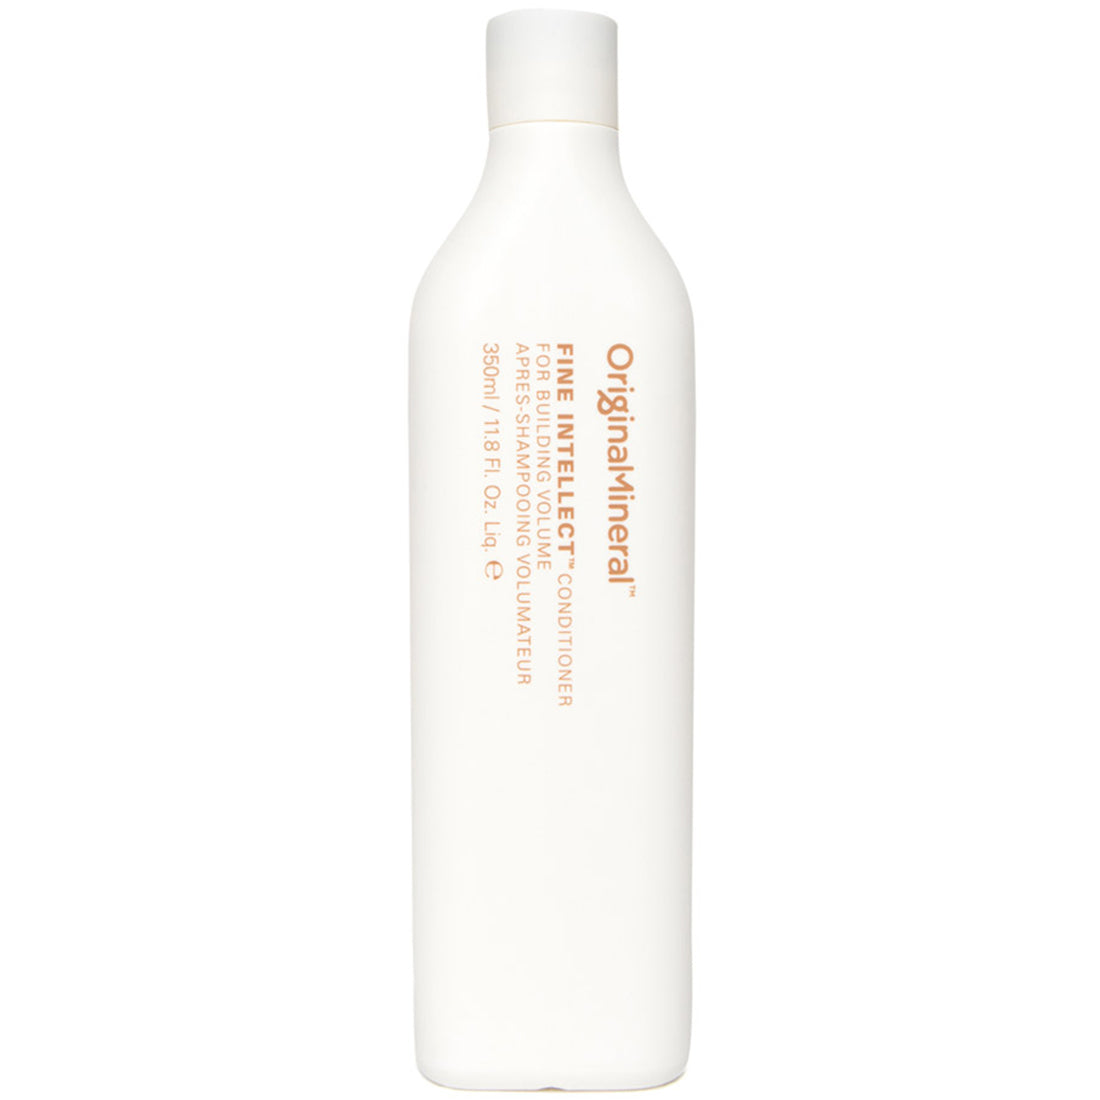 Fine Intellect Conditioner 350ml